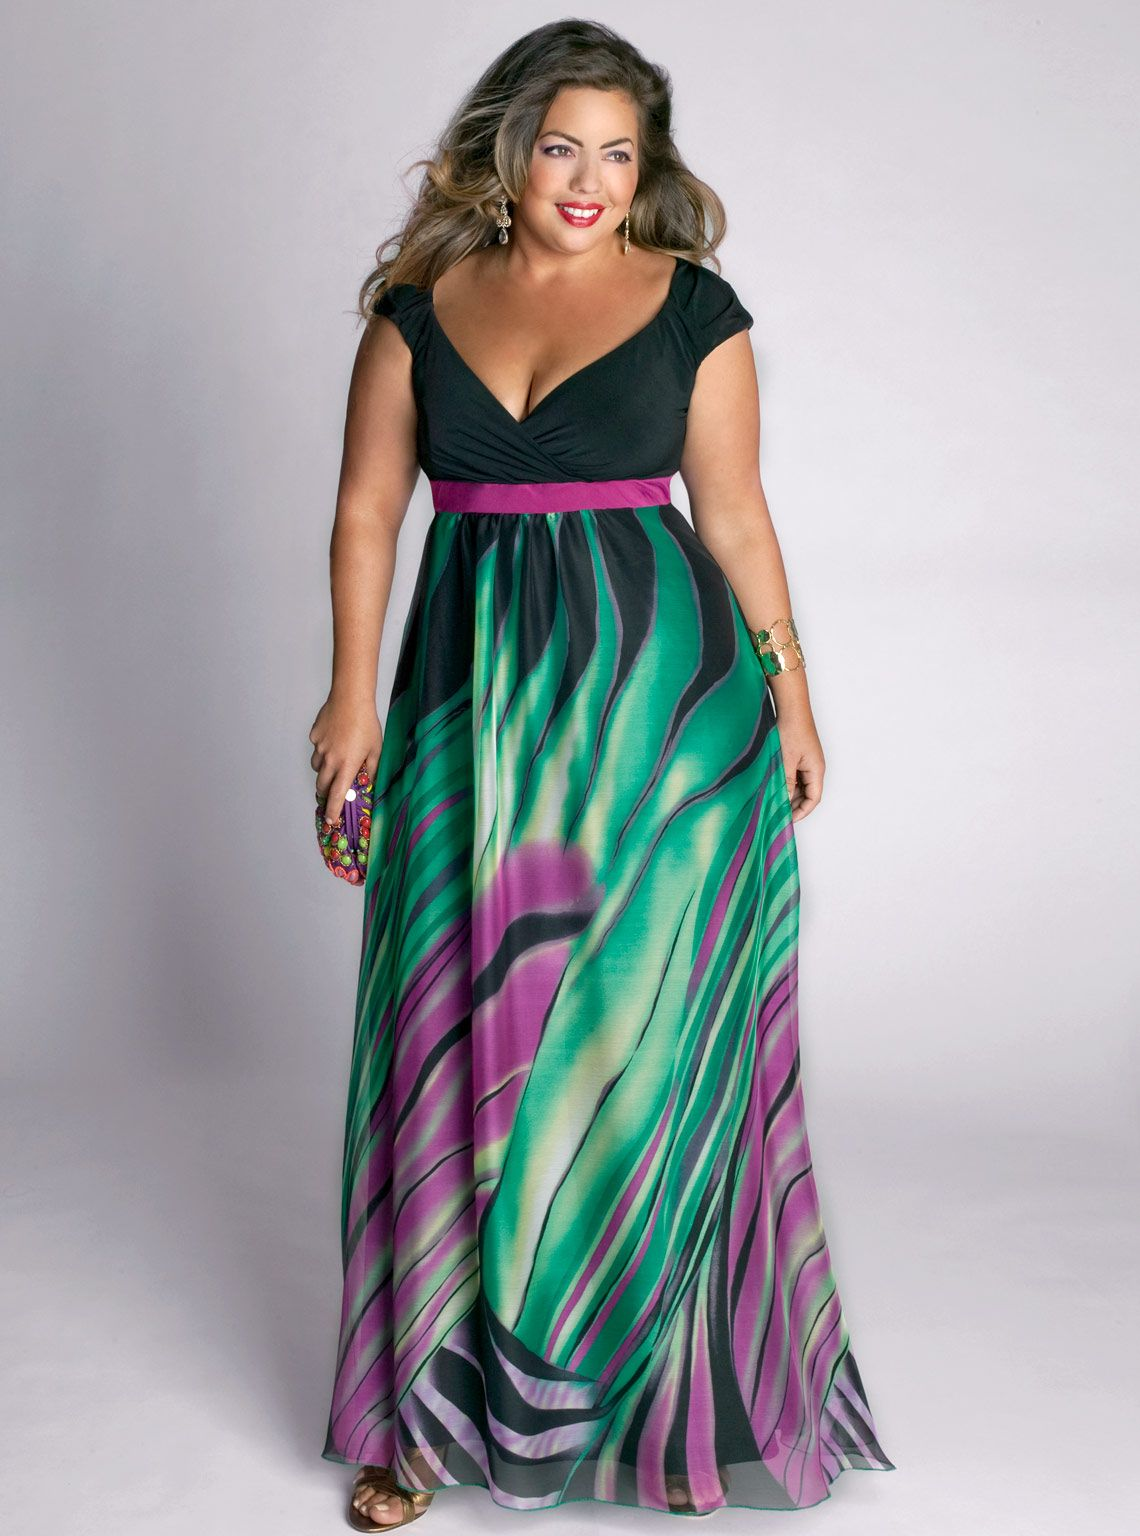 Plus Size Maxi Dreses For Sumer Weding 06 - Plus Size Maxi Dreses For Sumer Weding